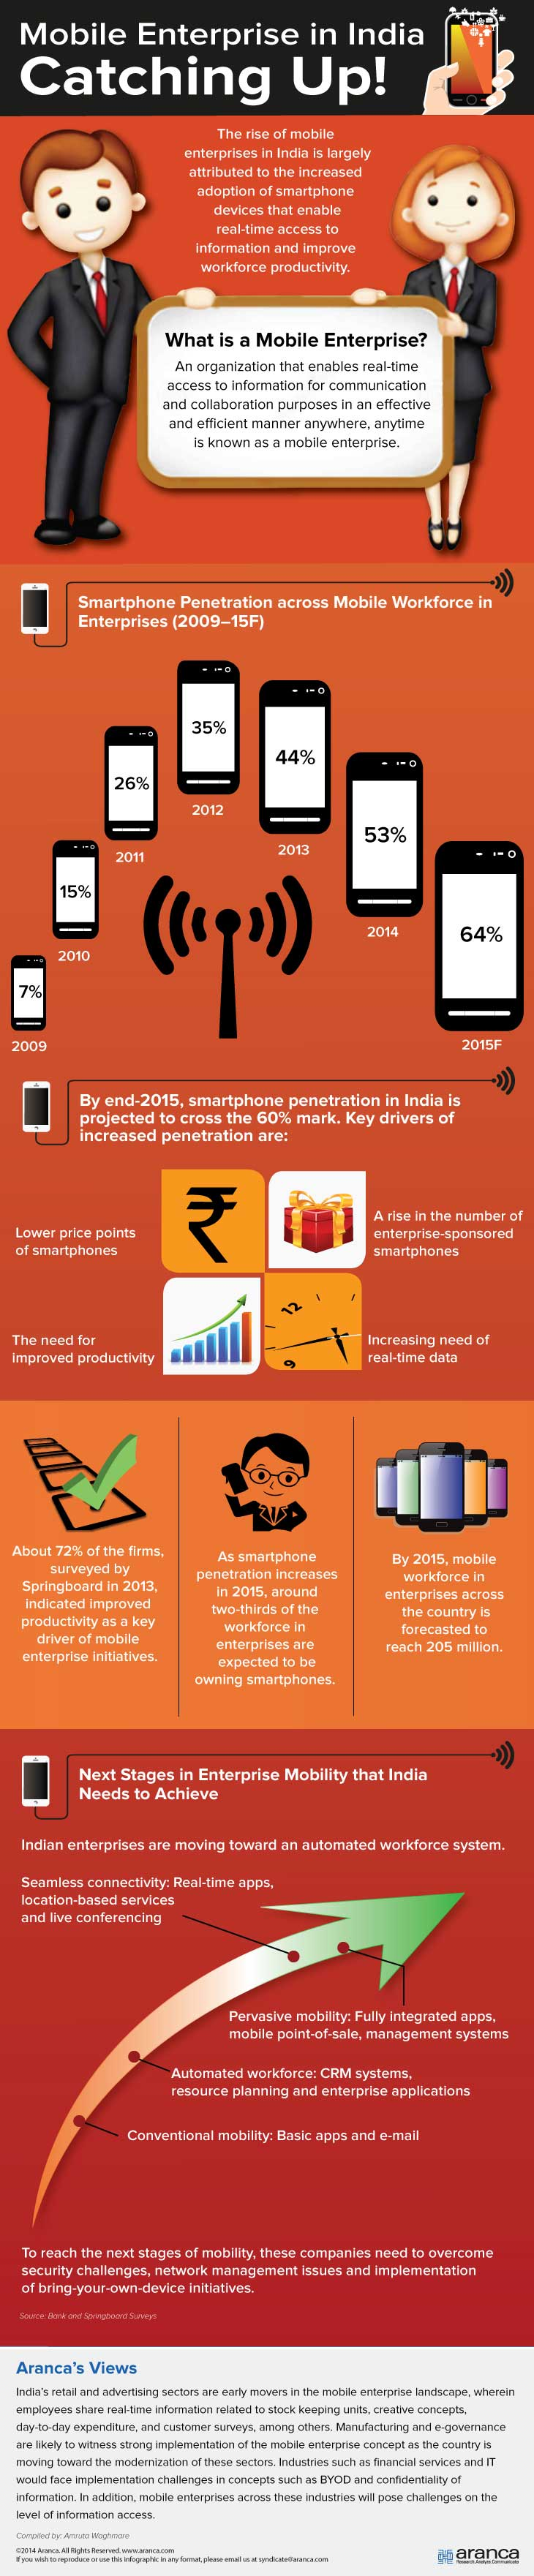 Mobile Enterprise in India